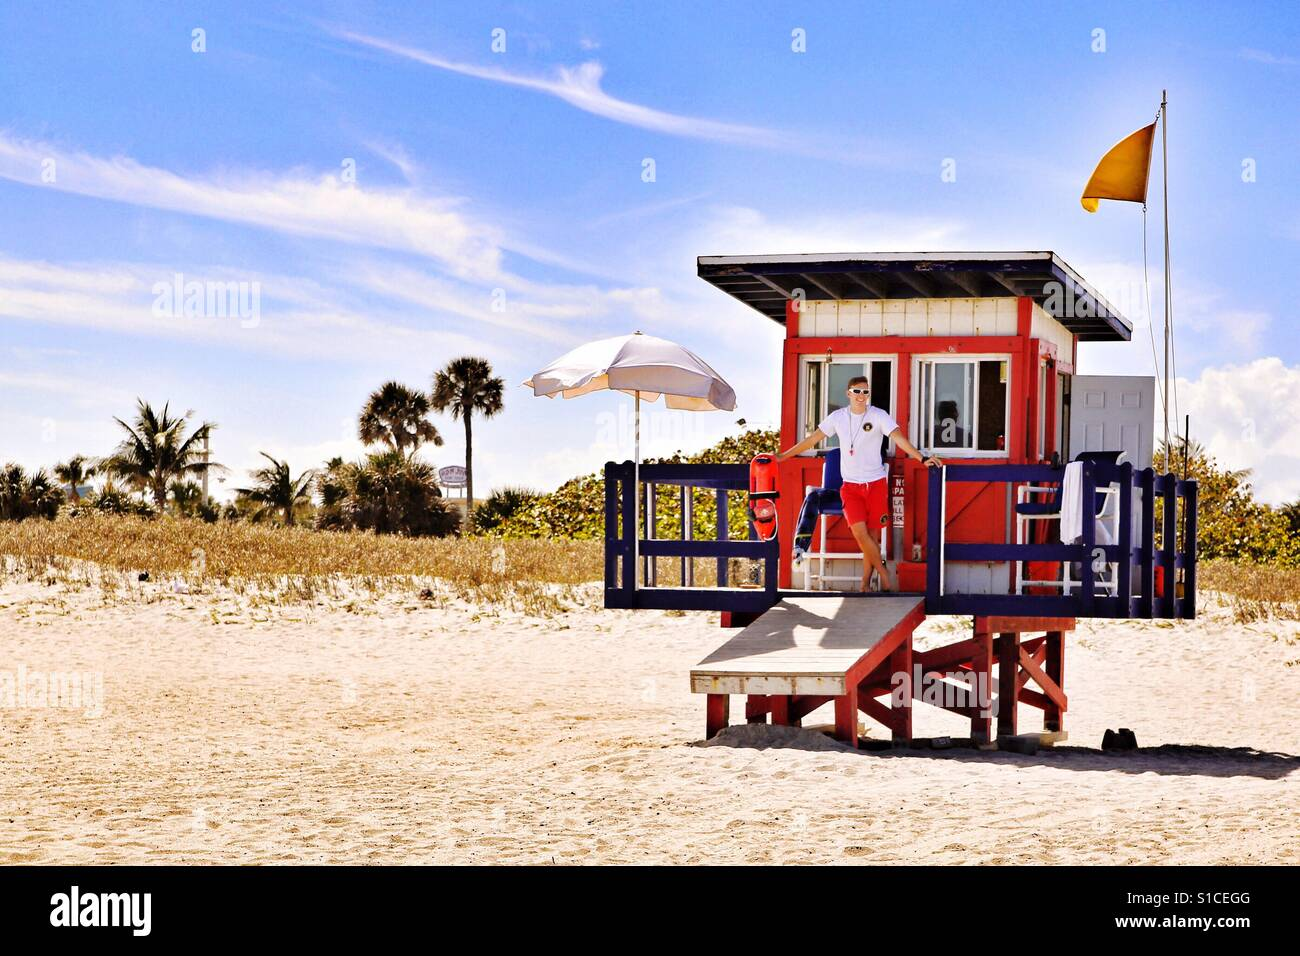 76f1d86610e3 Lifeguard shack Stock Photo  310676144 - Alamy